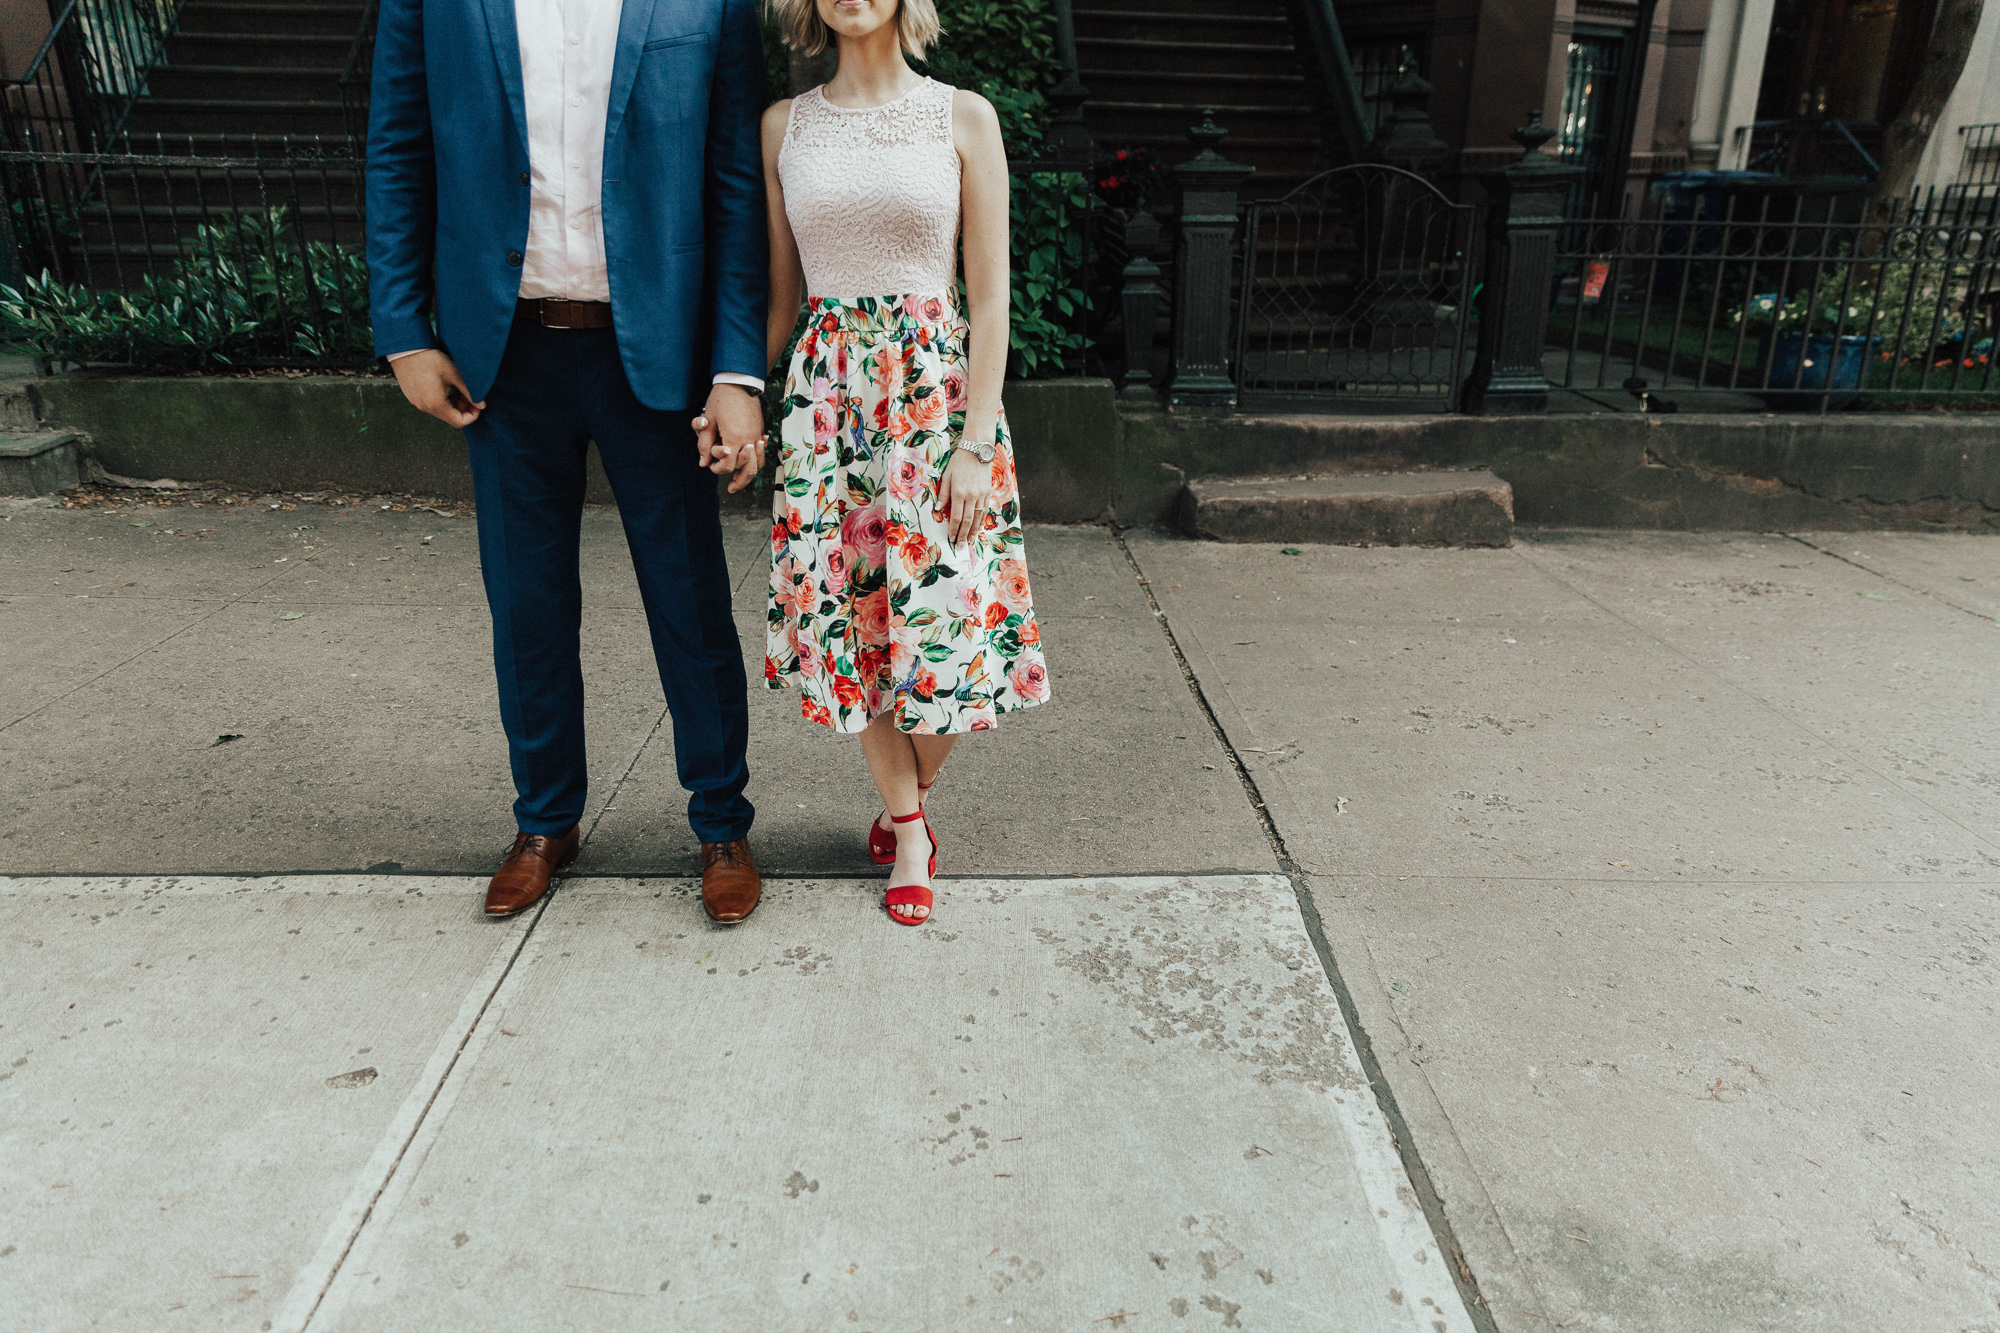 brooklyn_nyc_engagement_photography-19-of-83.jpg